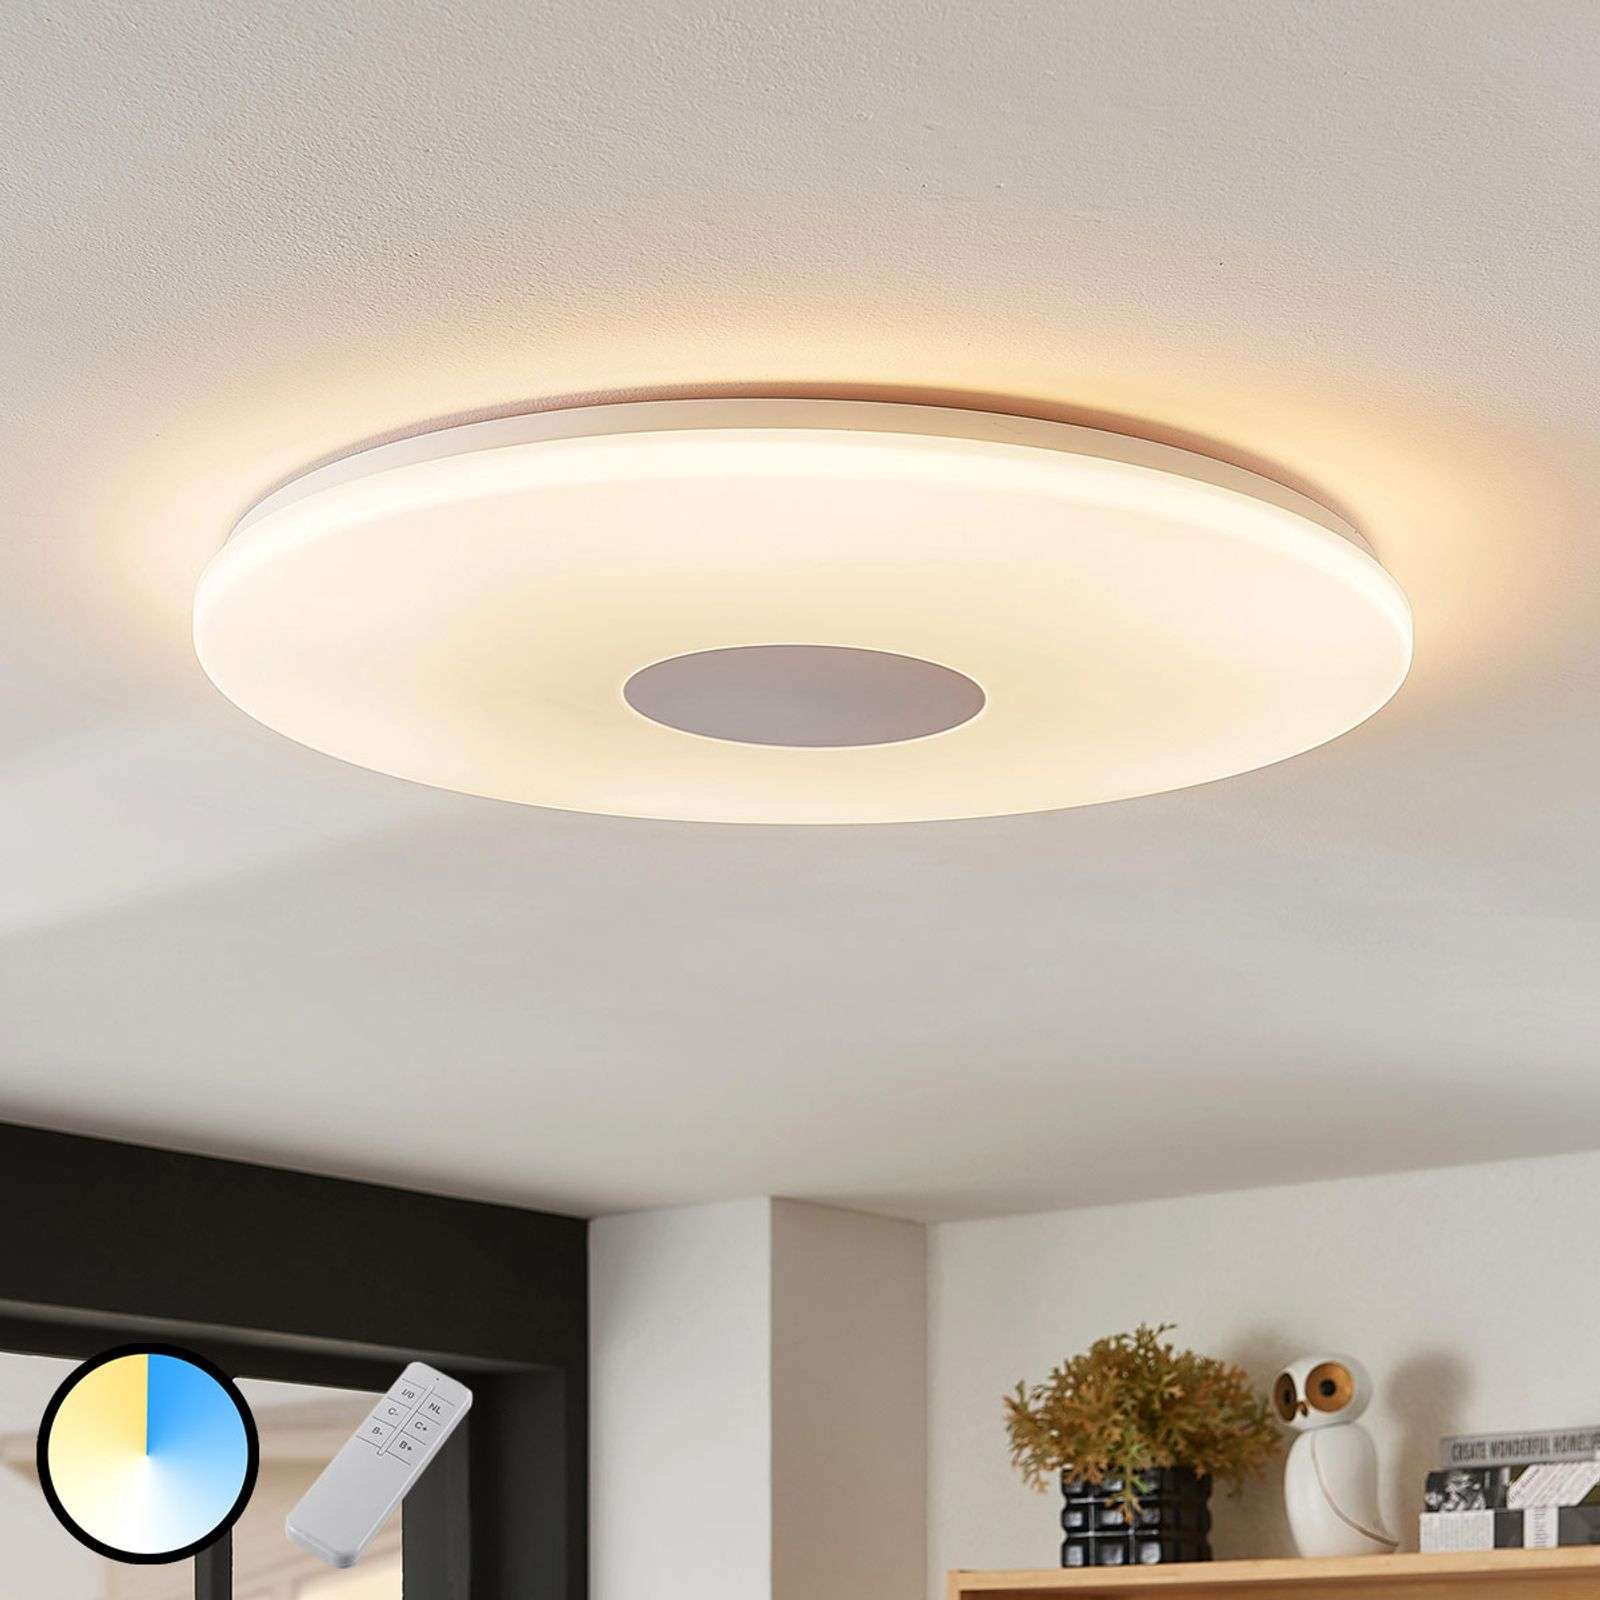 Plafón LED Renee, 35 W